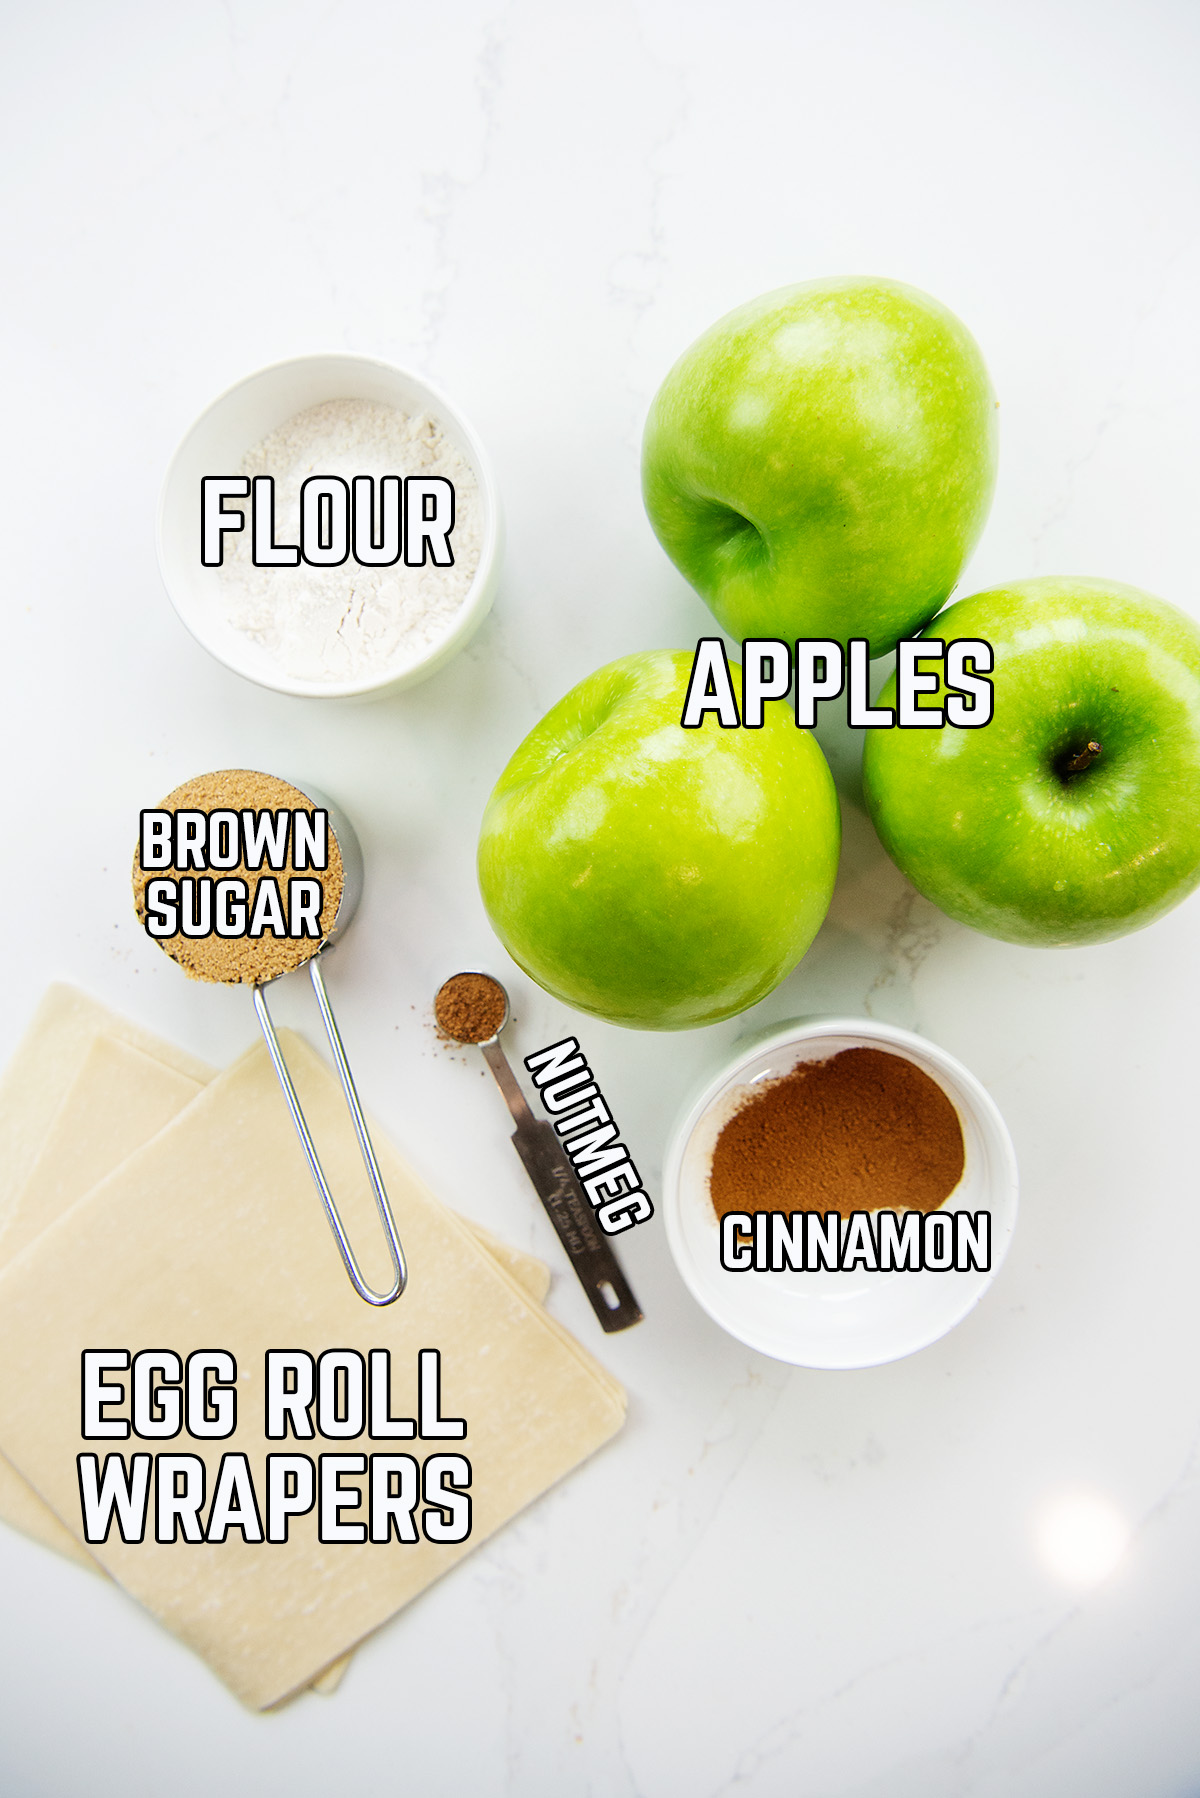 Apple egg roll ingredients spread out on a counter